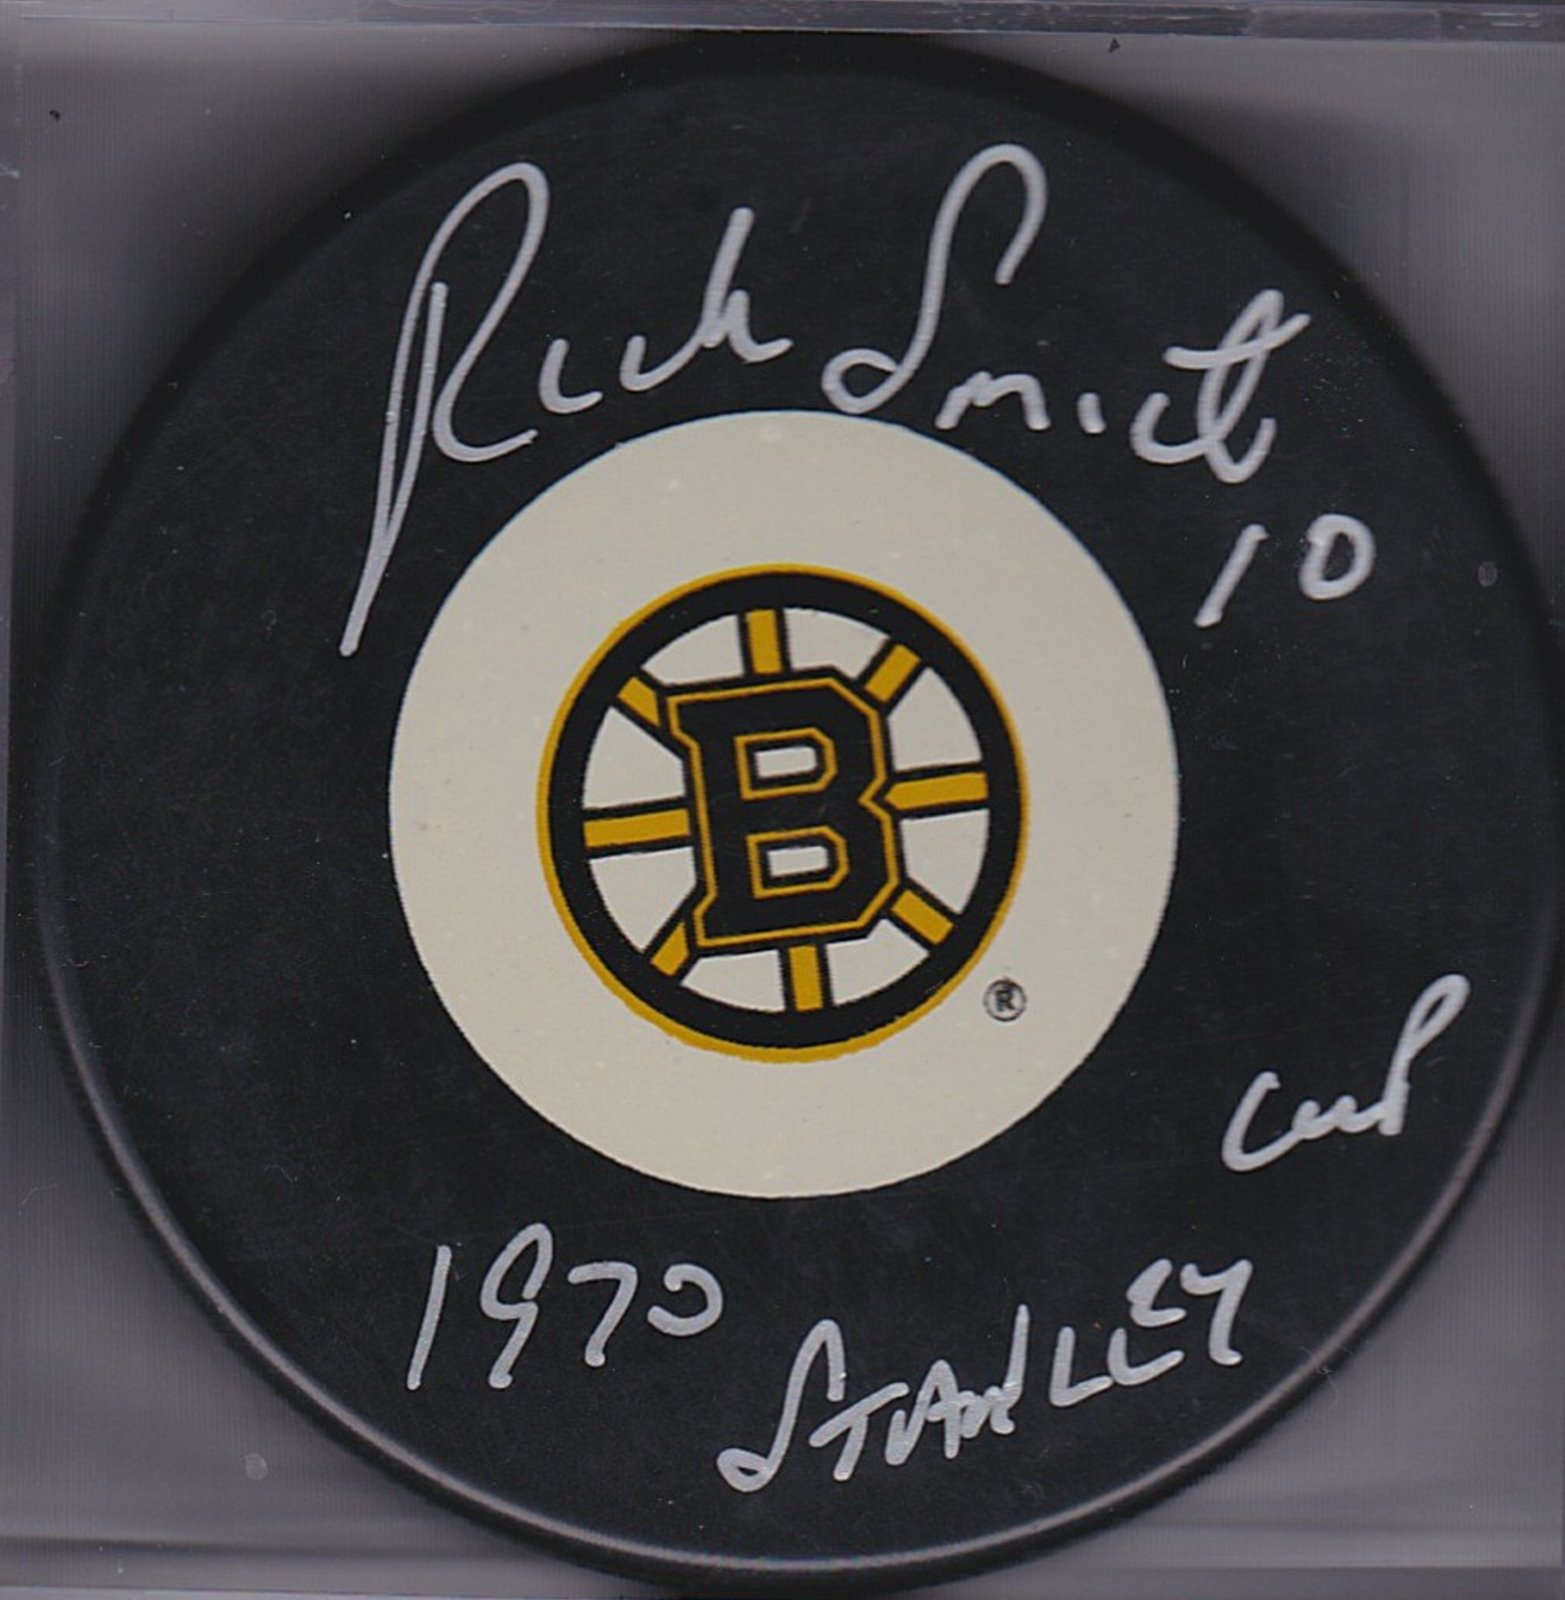 Rick Smith Autograph Boston Bruins Logo puck